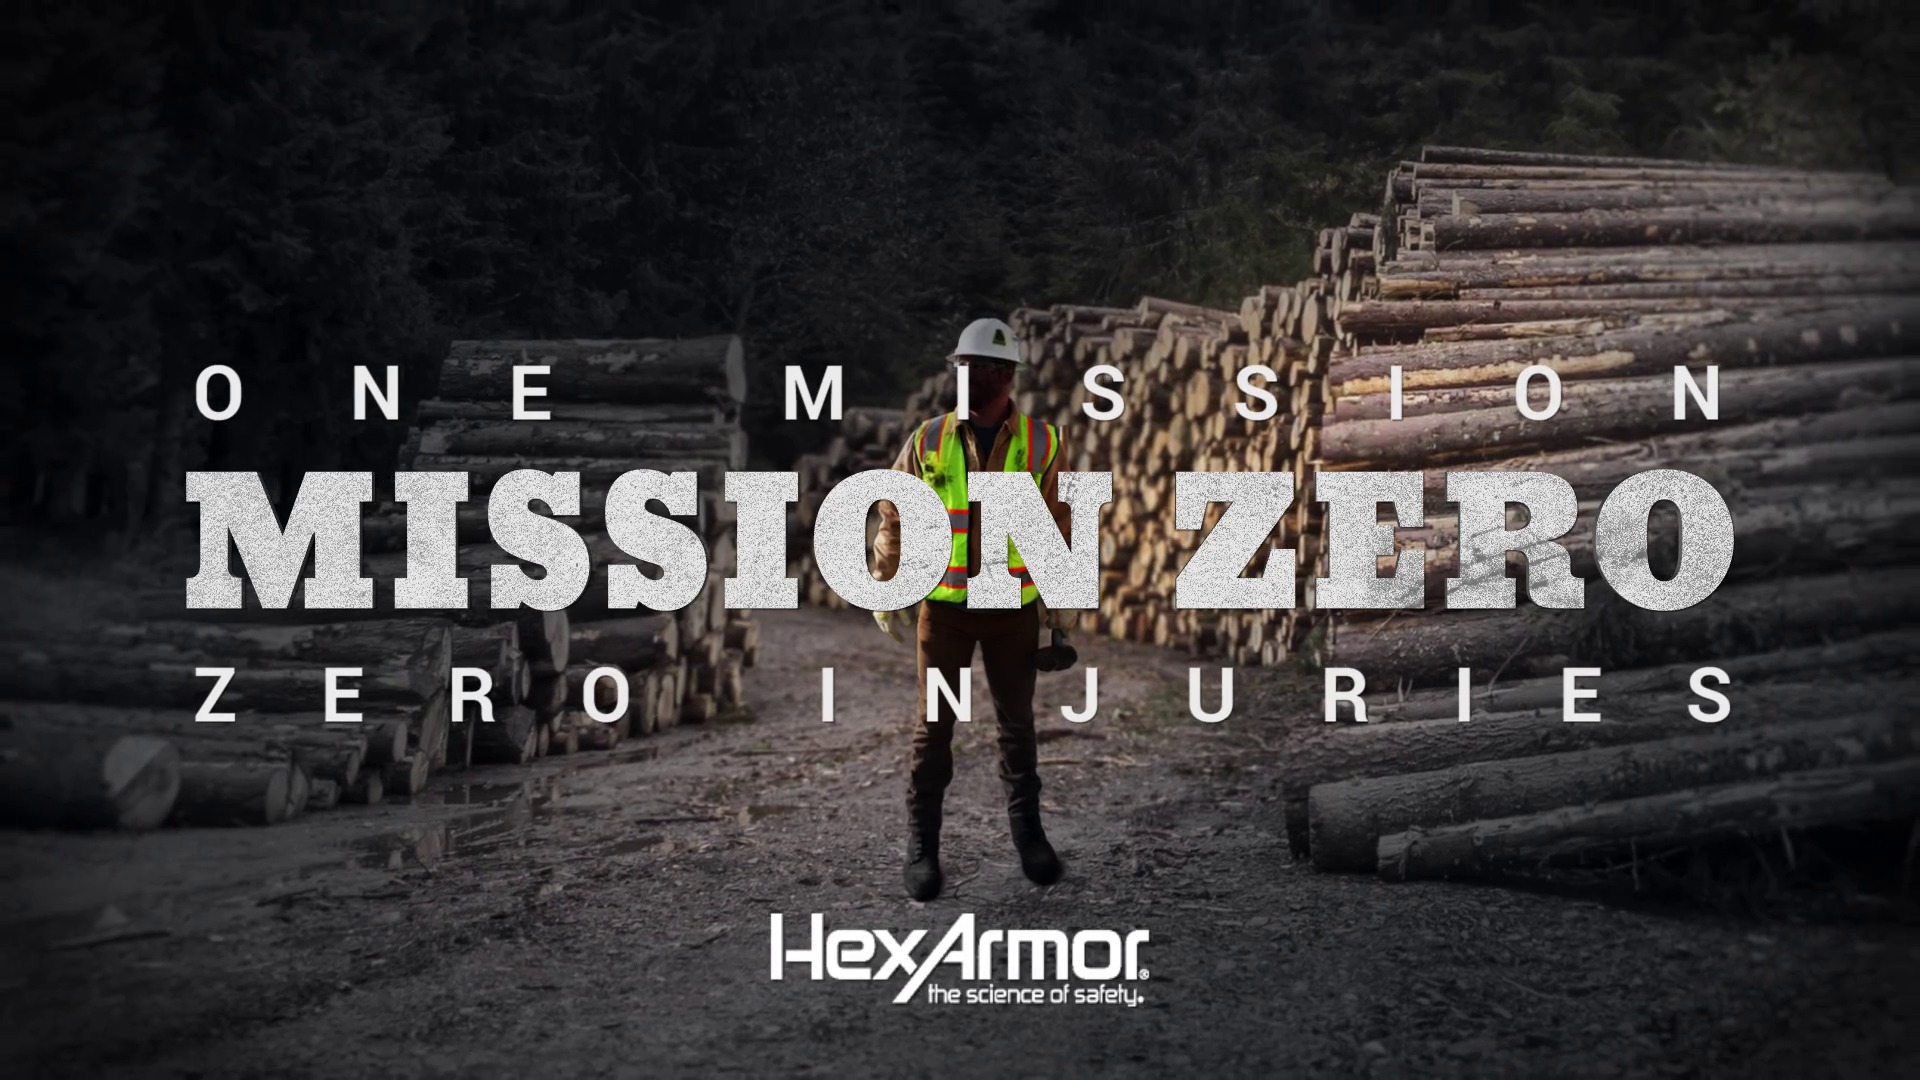 Lumber Safety | Mission Zero | HexArmor